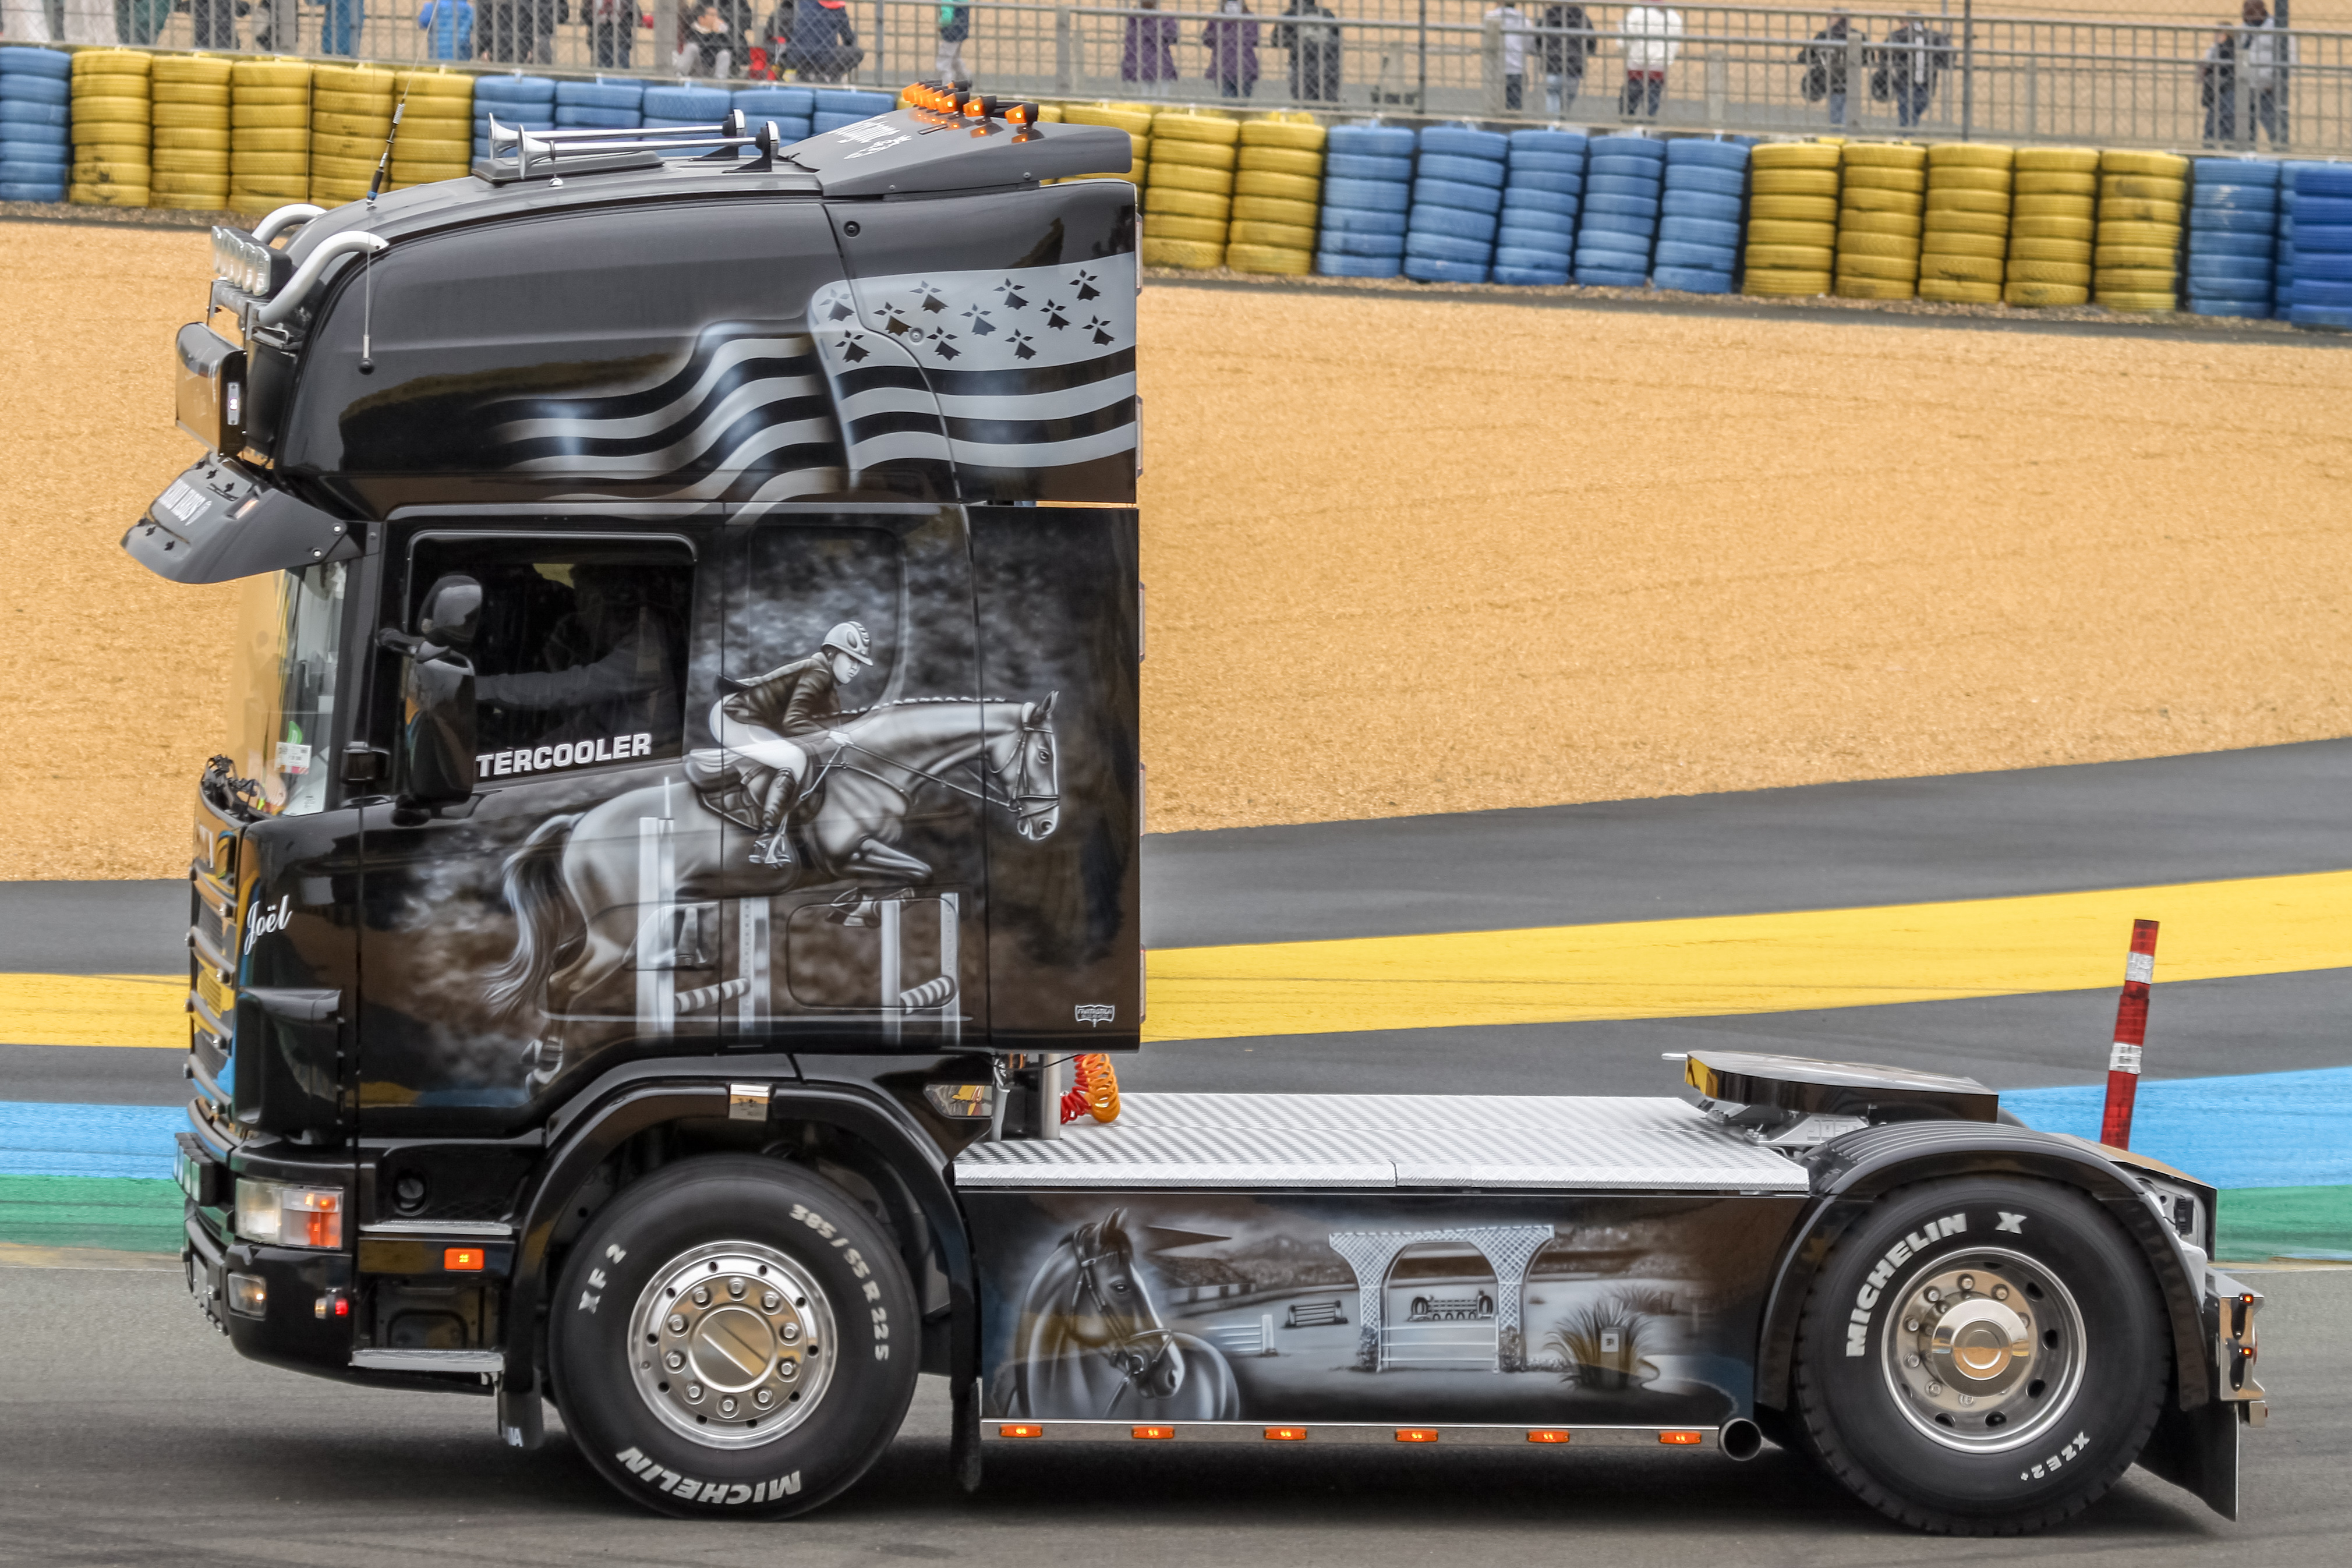 Scania Trucks Pictures - New, Old, Custom & Show Truck Photo Galleries